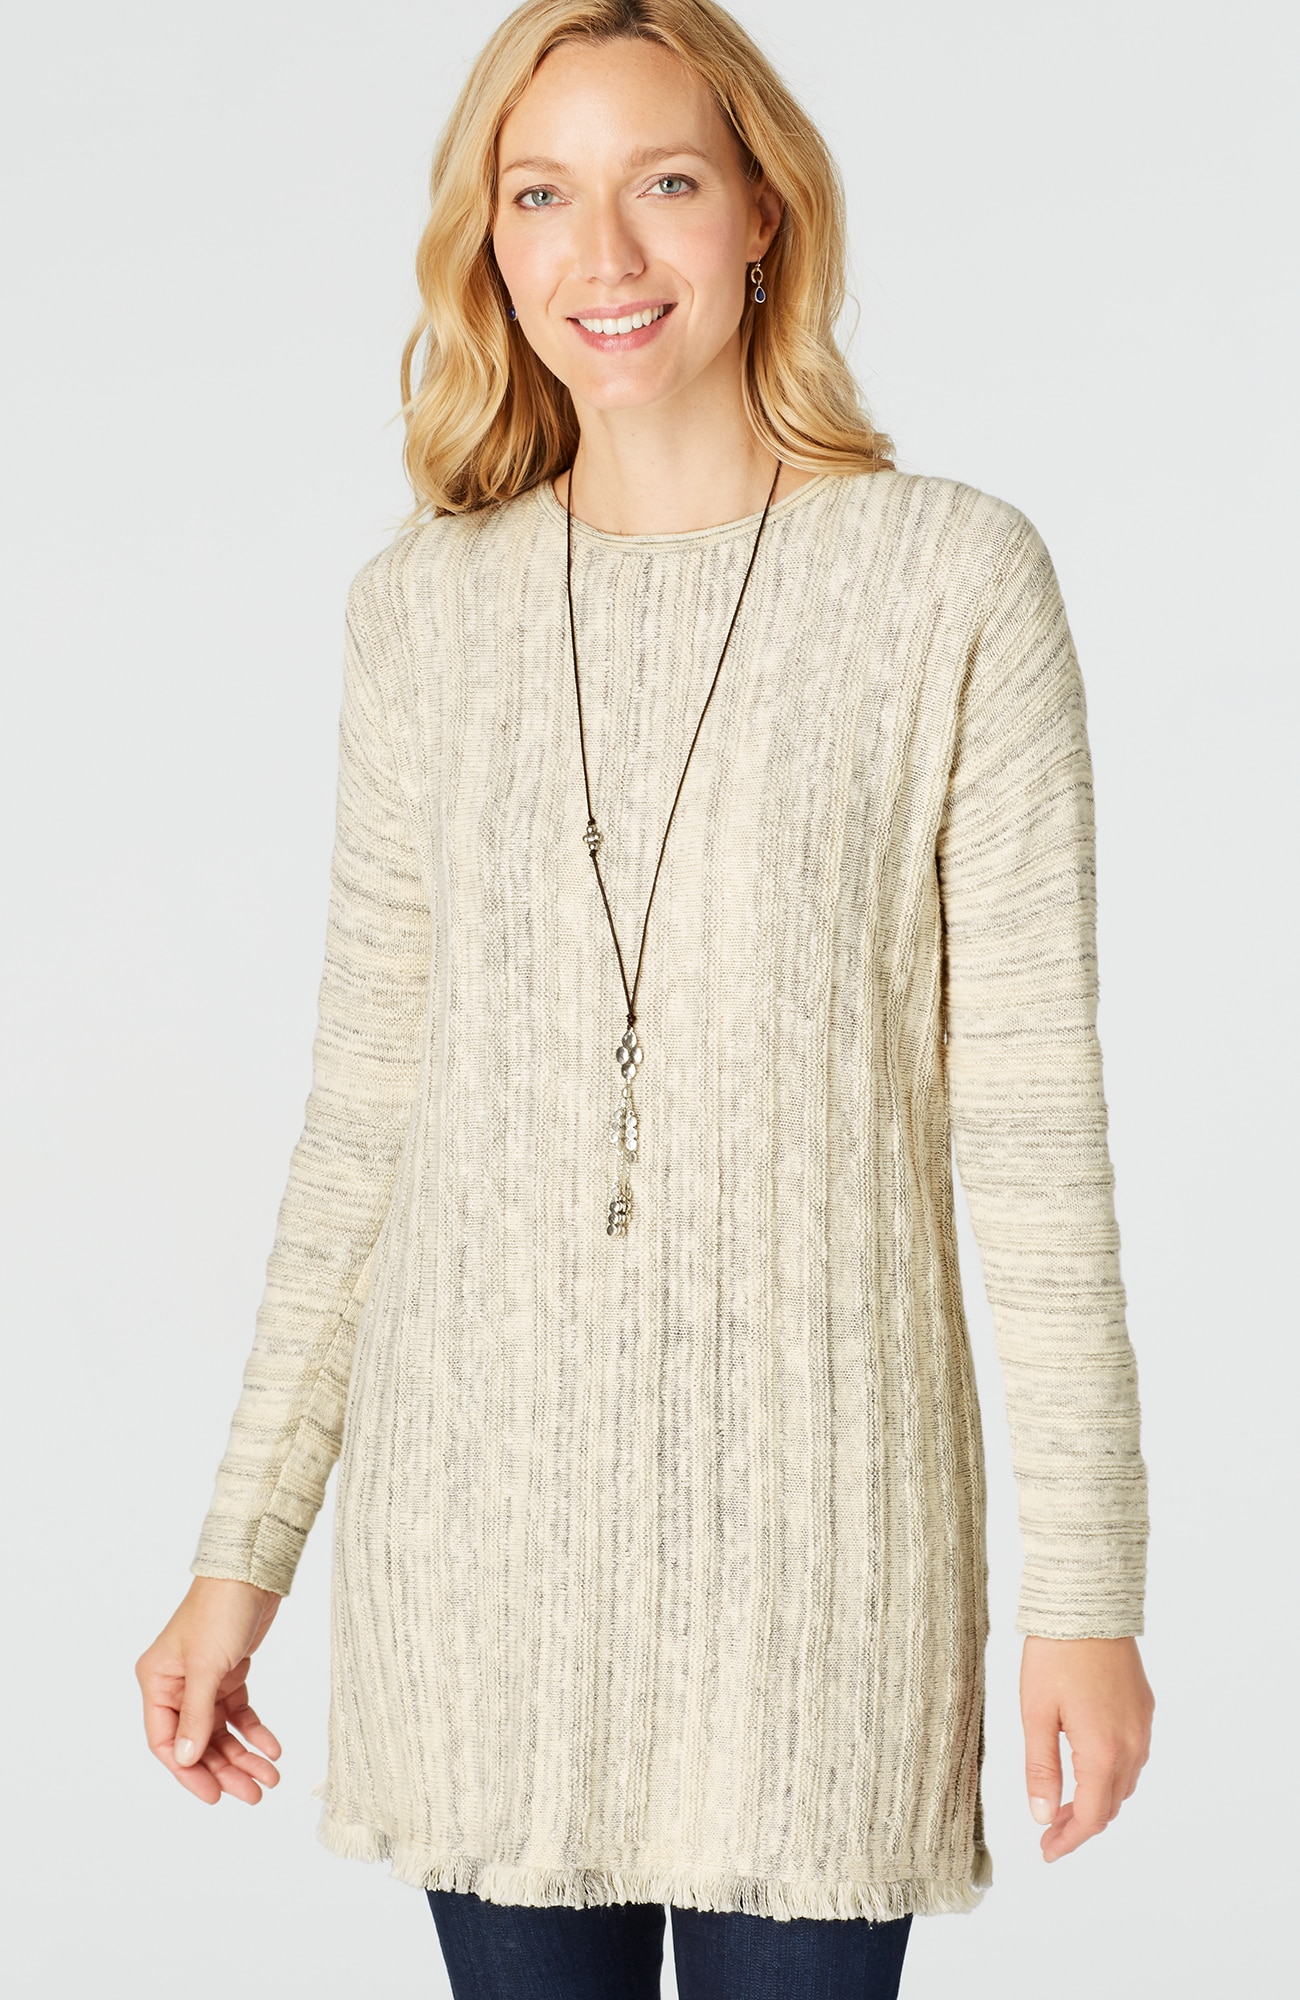 fringe-trimmed sweater tunic